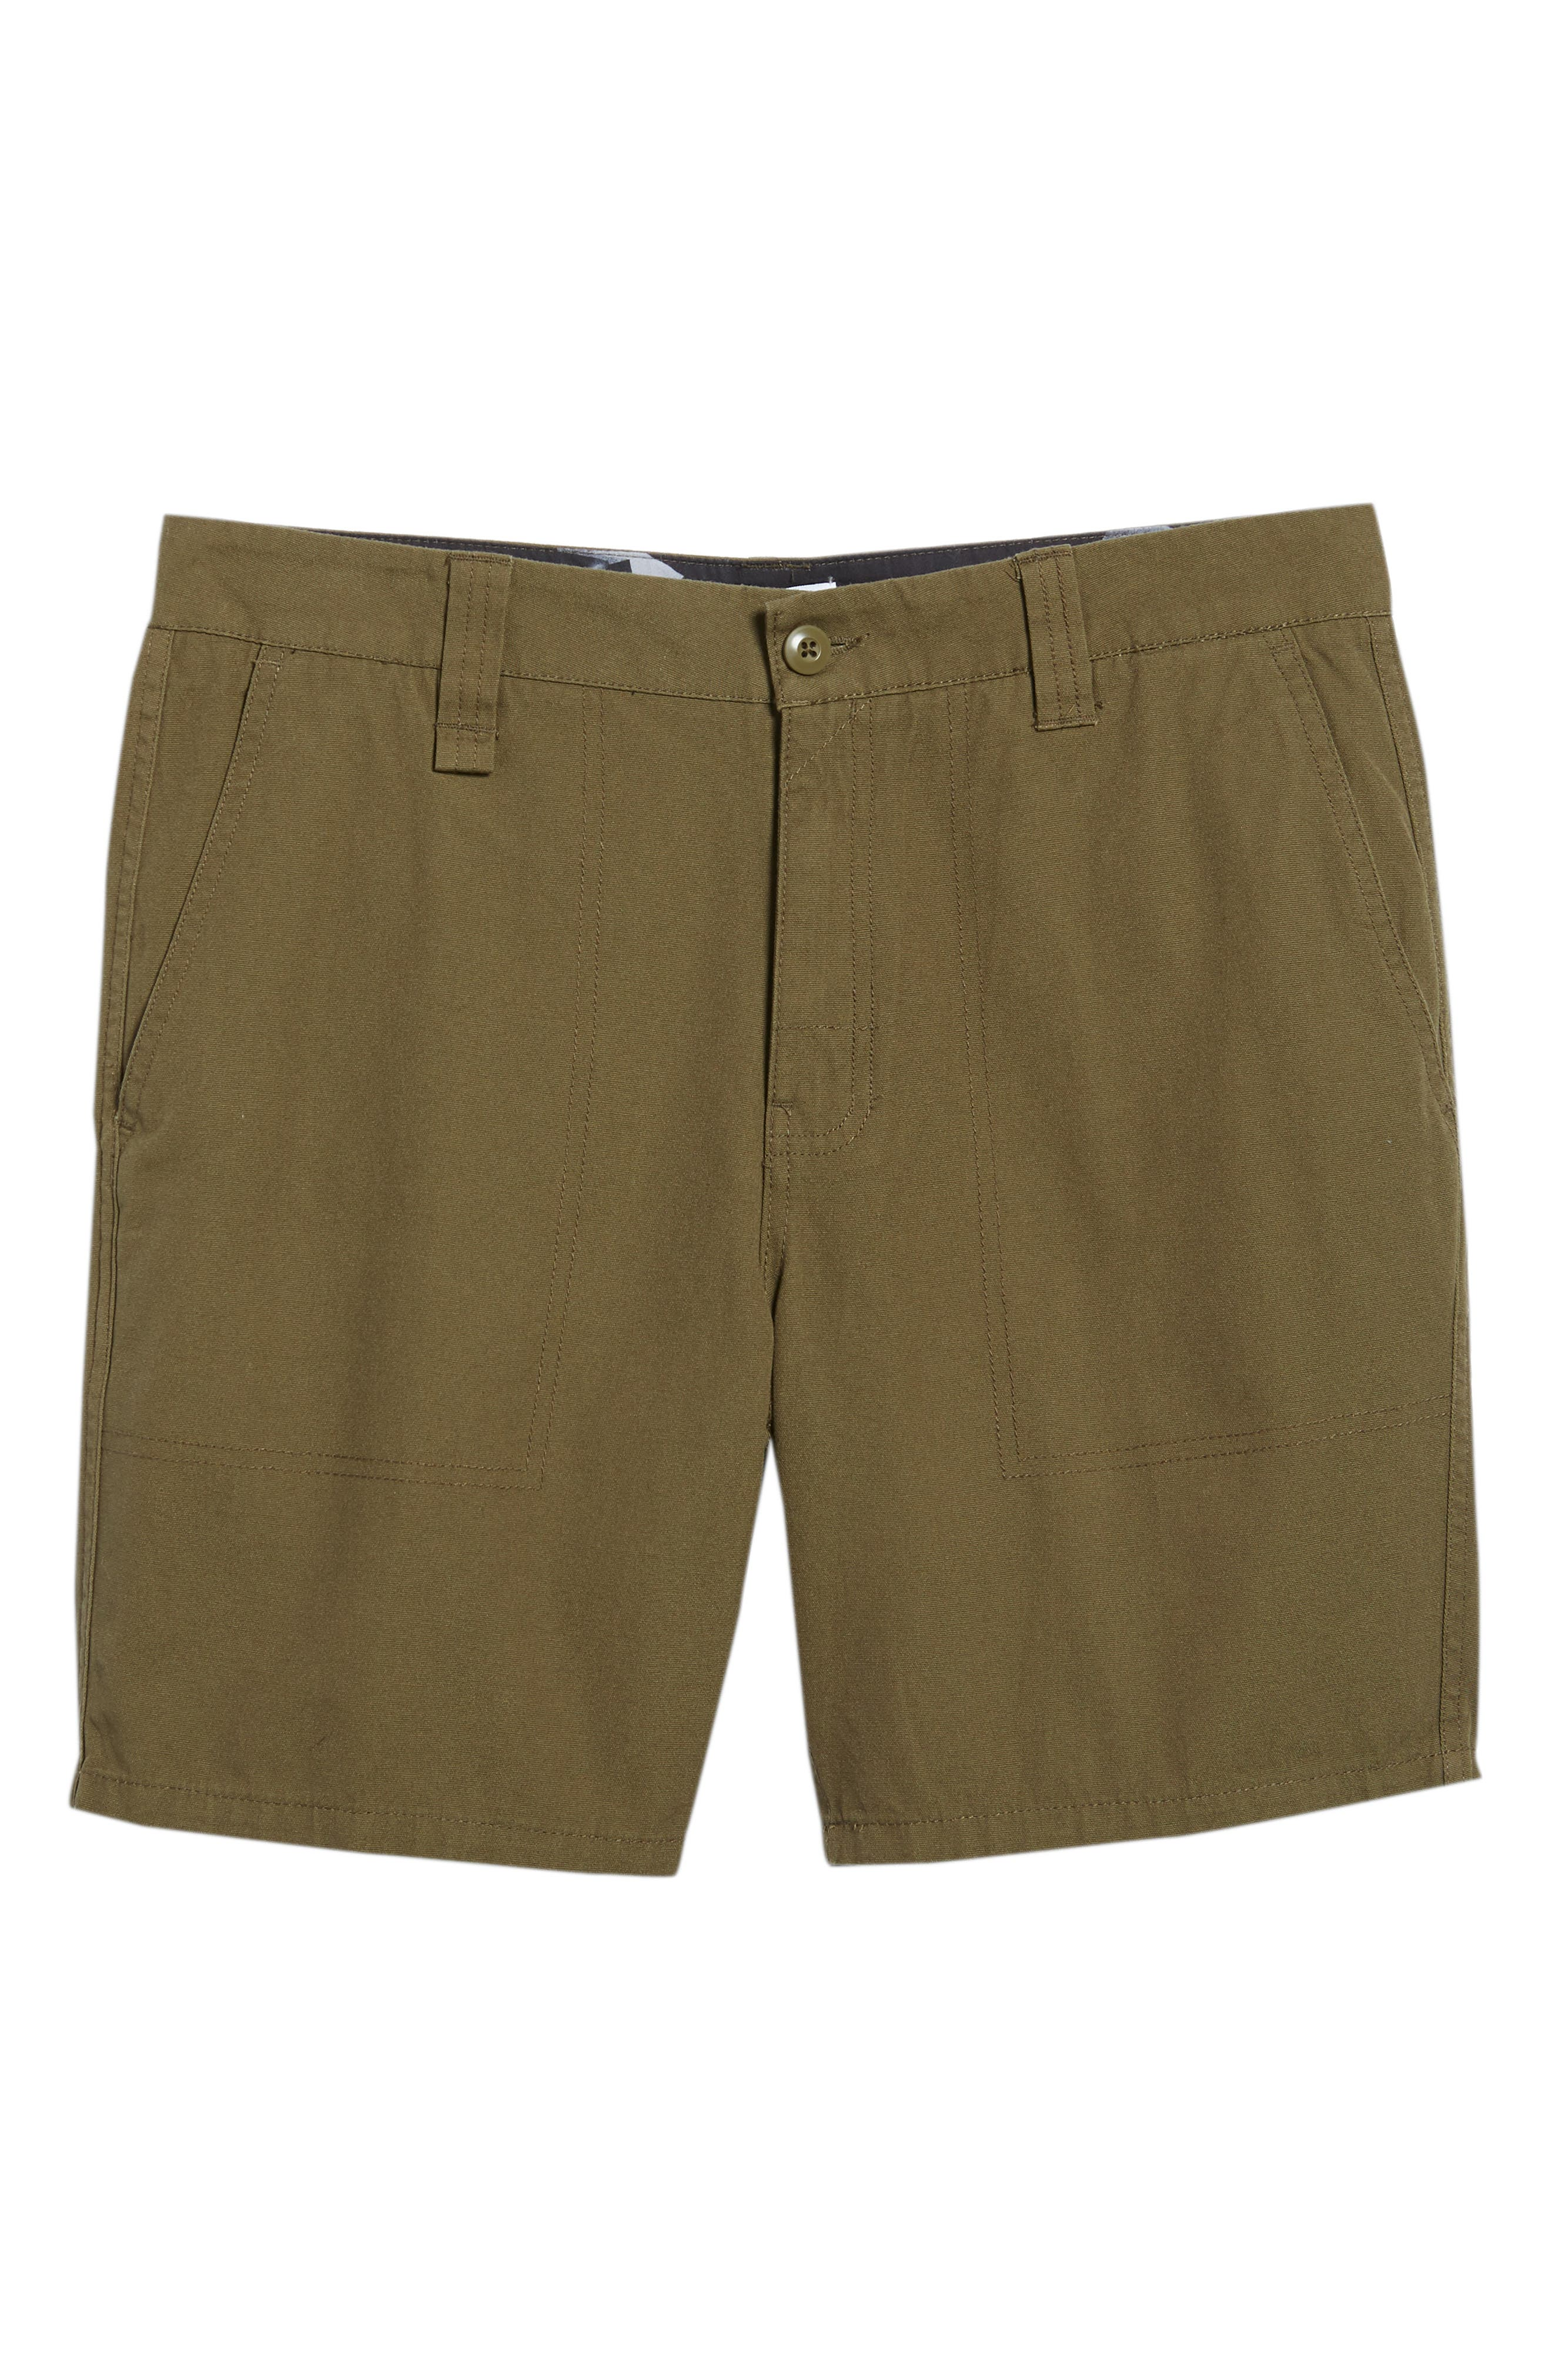 Collins Canvas Shorts,                             Alternate thumbnail 6, color,                             Fatigue Green